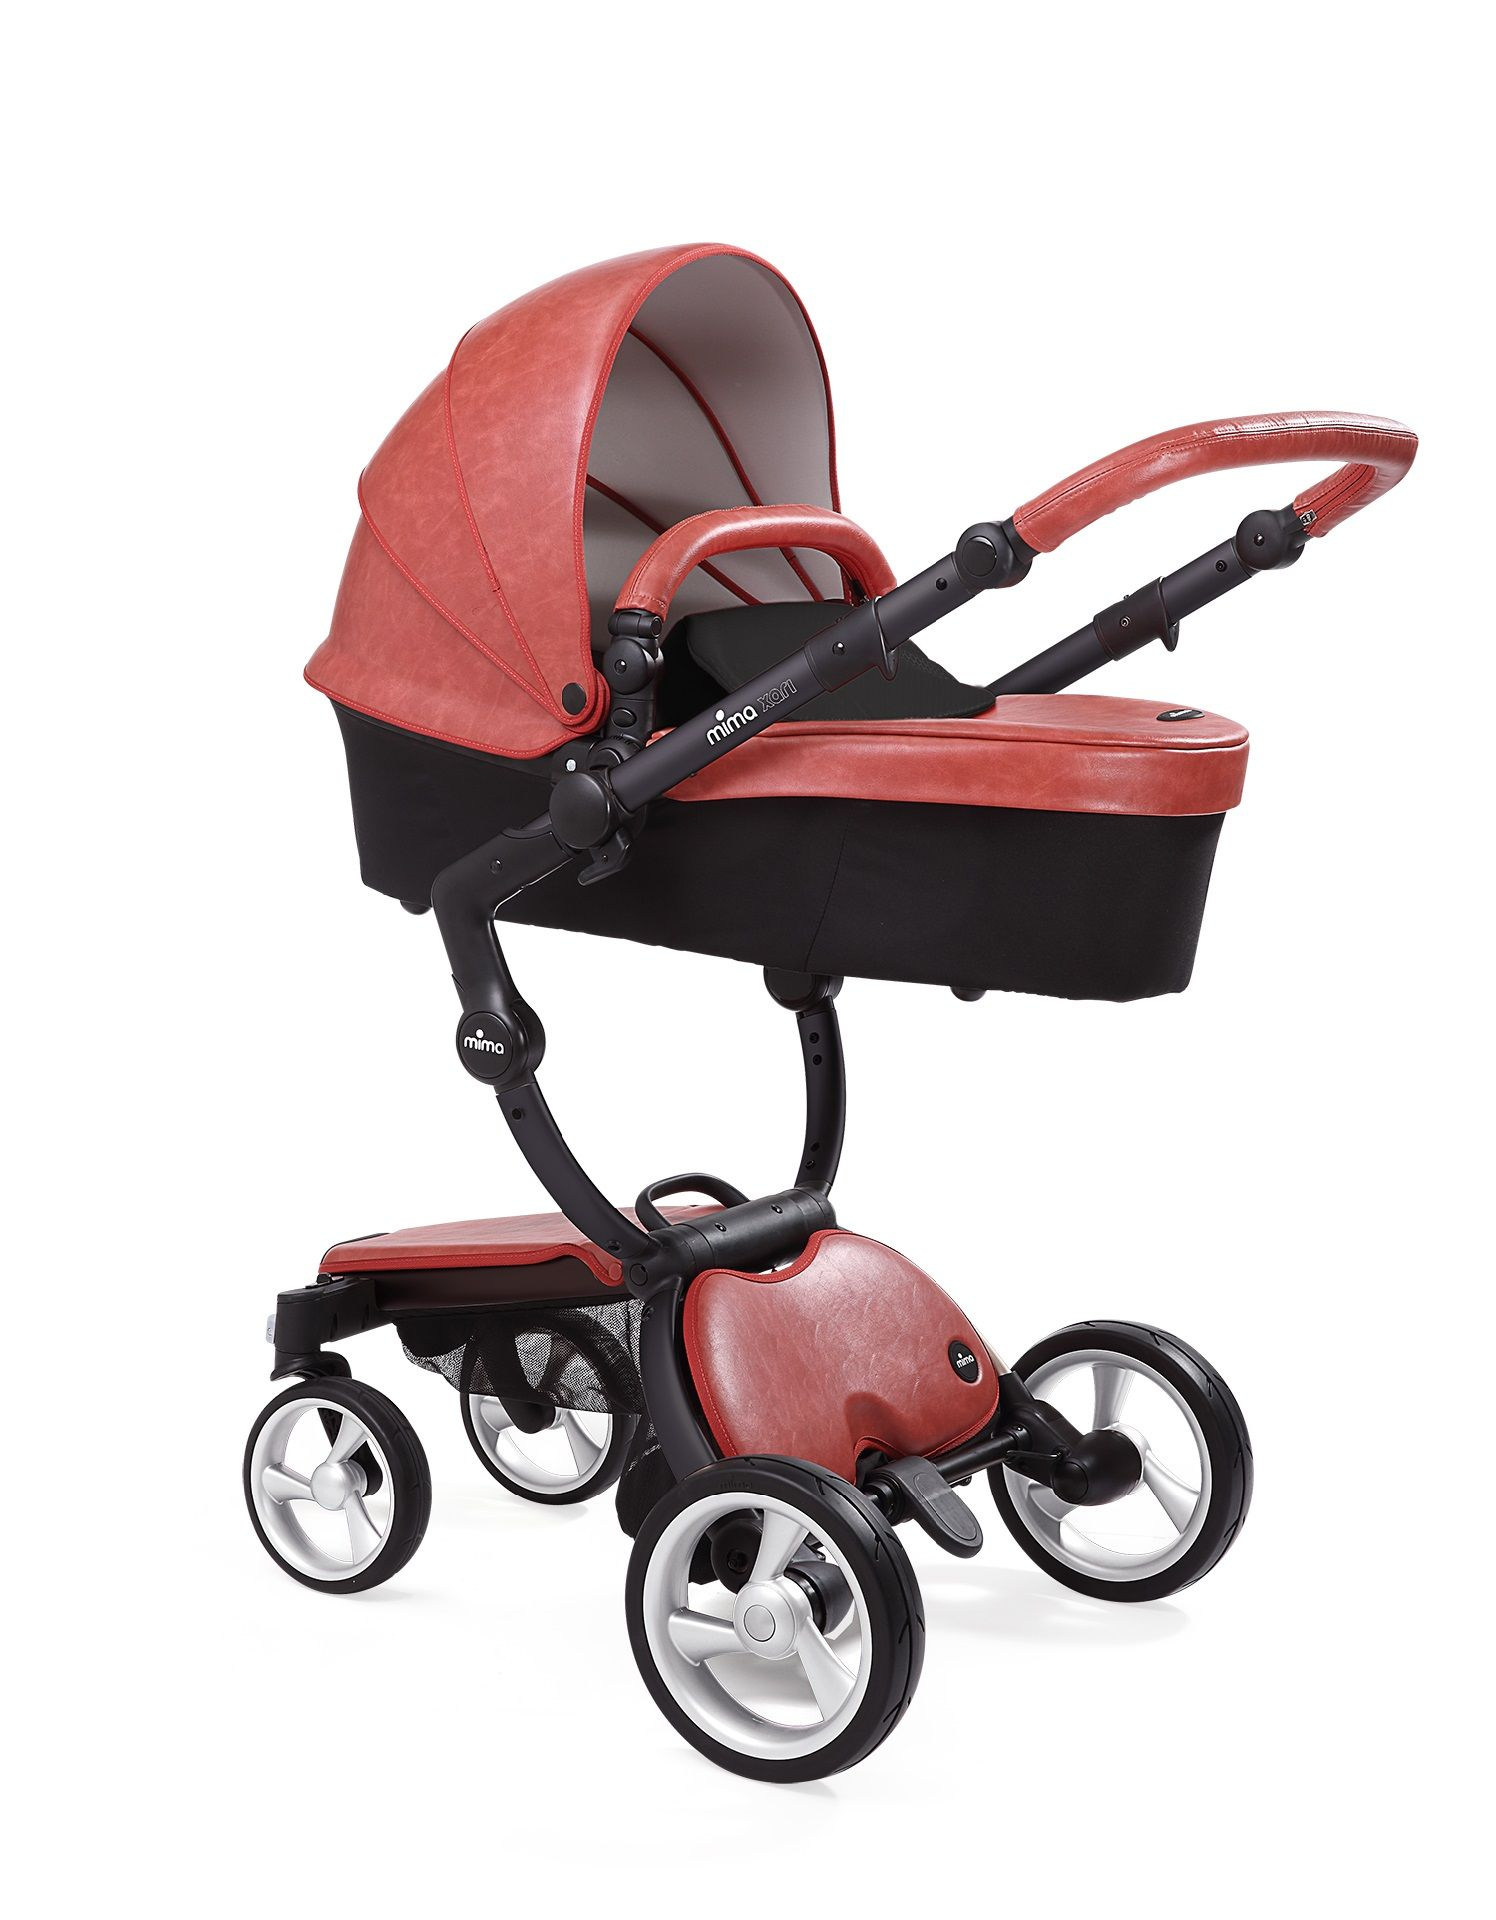 New Sicilian Red xari in carrycot mode Baby Accessories Pinterest